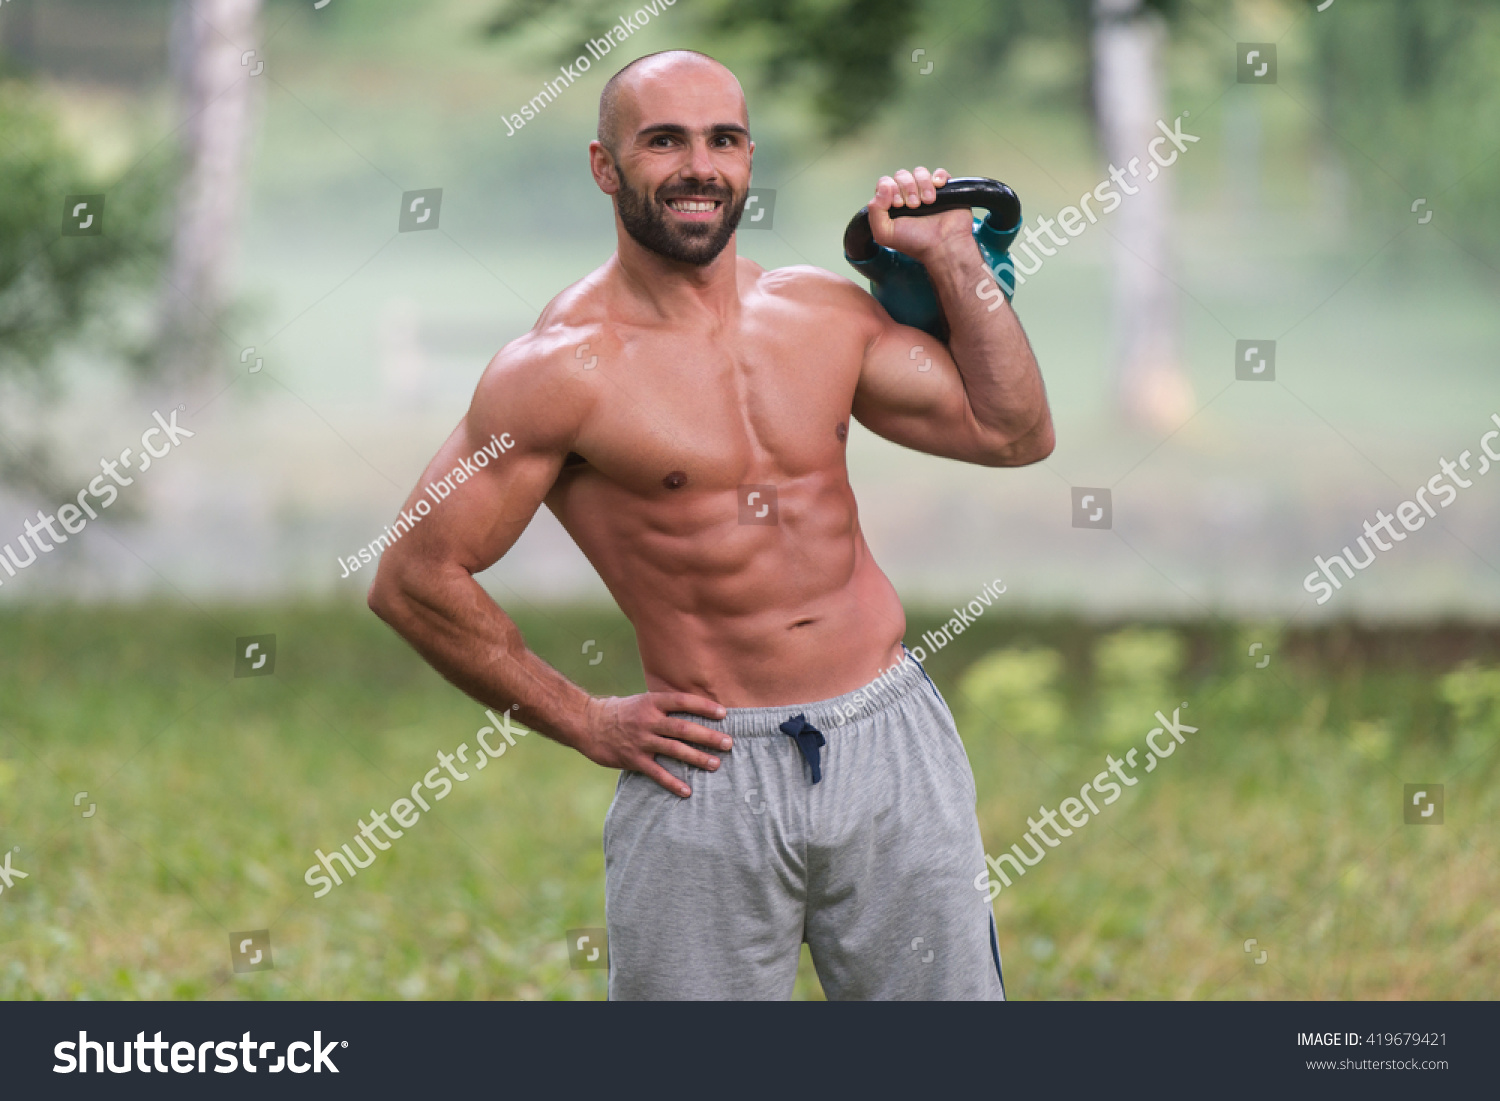 Kettlebell Bodybuilding Muscular Adult Caucasian Man Doing A Exercise Outdoors With